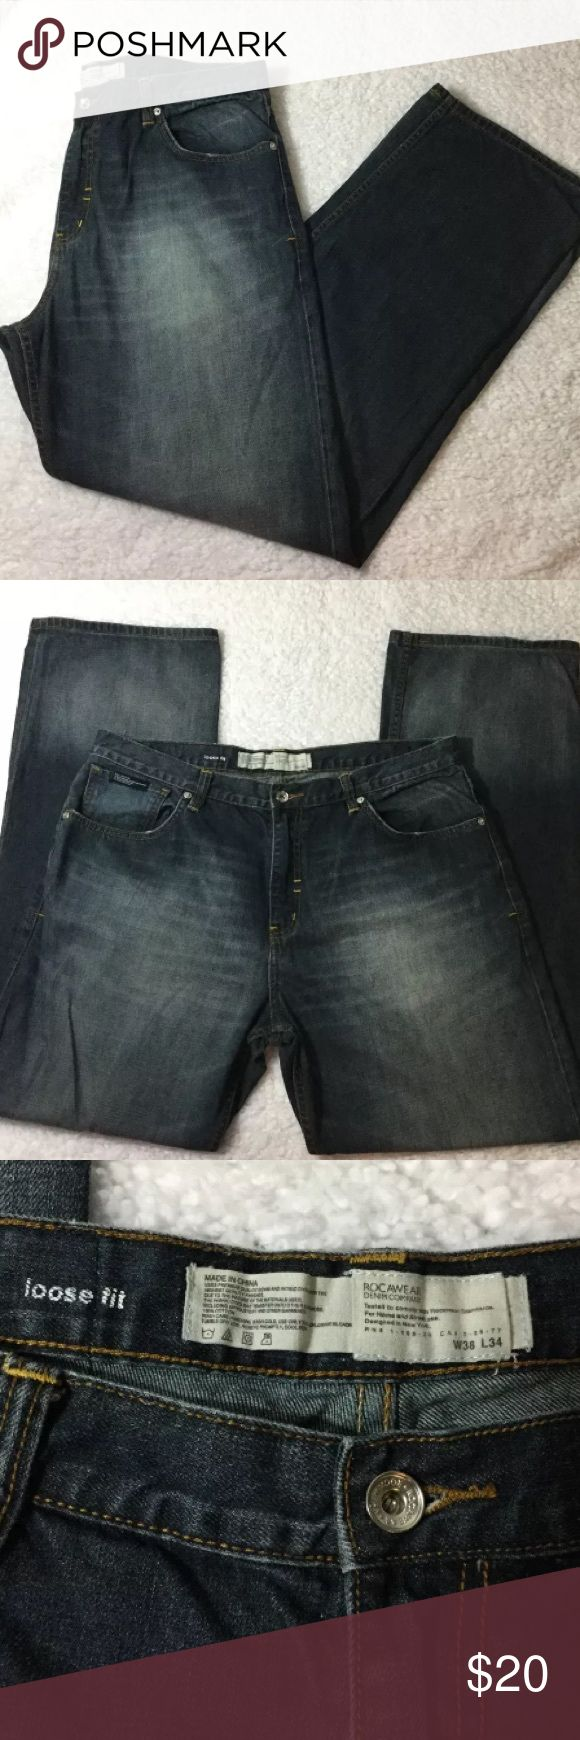 👖 Rocawear 38x34 Loose Fit Jeans  Faded wash Rocawear 38x34 Loose Fit Jeans  Faded wash Rocawear Jeans